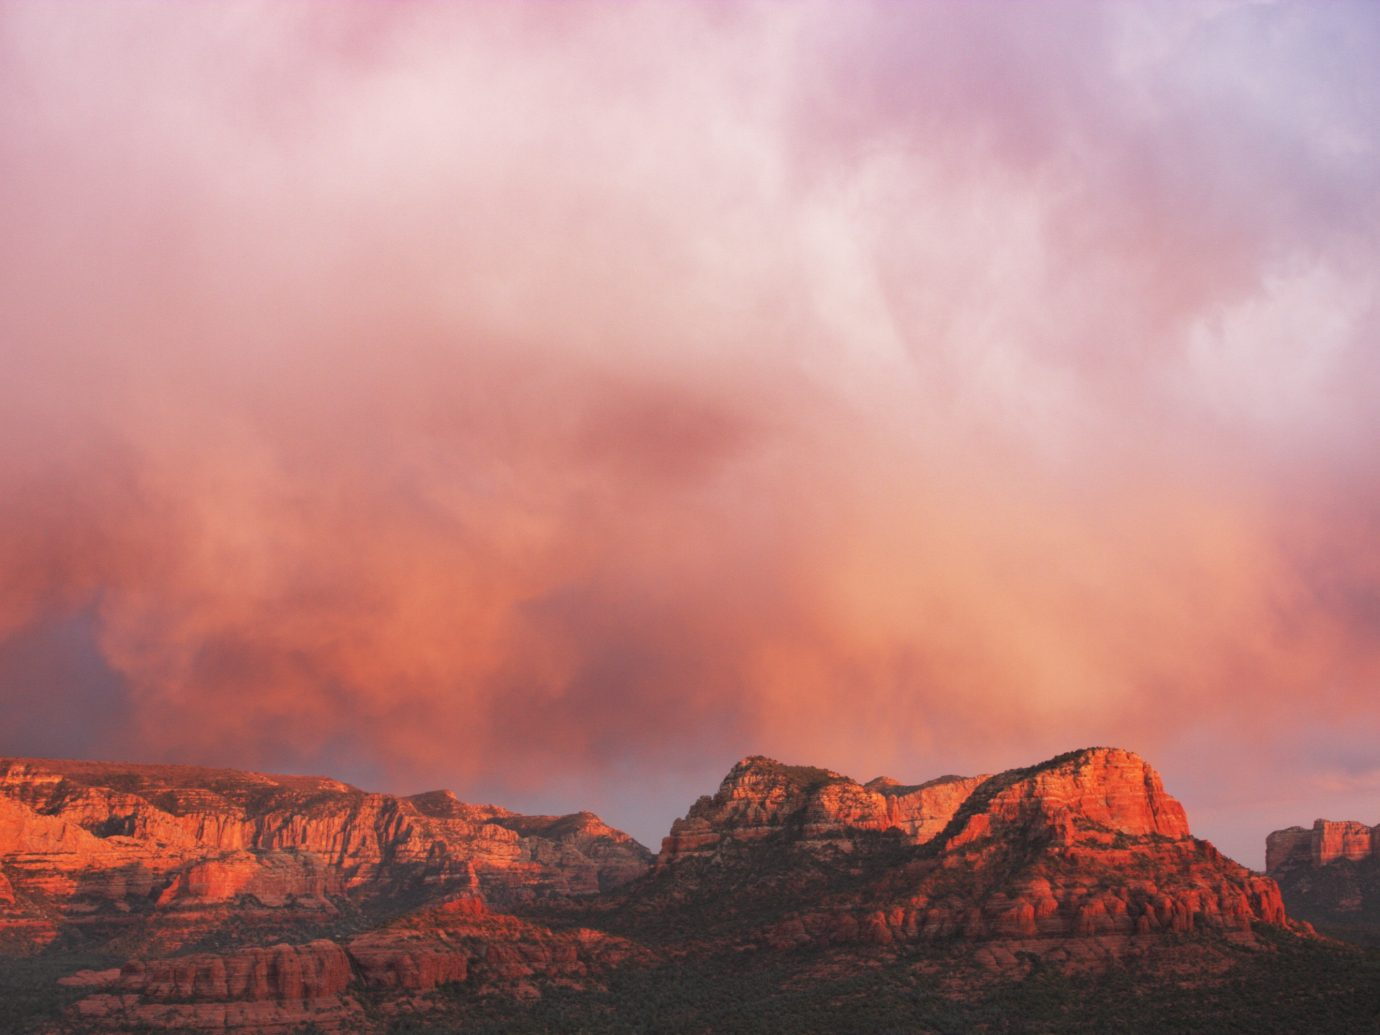 Offbeat sky mountain outdoor Nature mountainous landforms landform geographical feature clouds atmospheric phenomenon sunrise cloud geological phenomenon Sunset dawn valley morning canyon background evening dusk cloudy